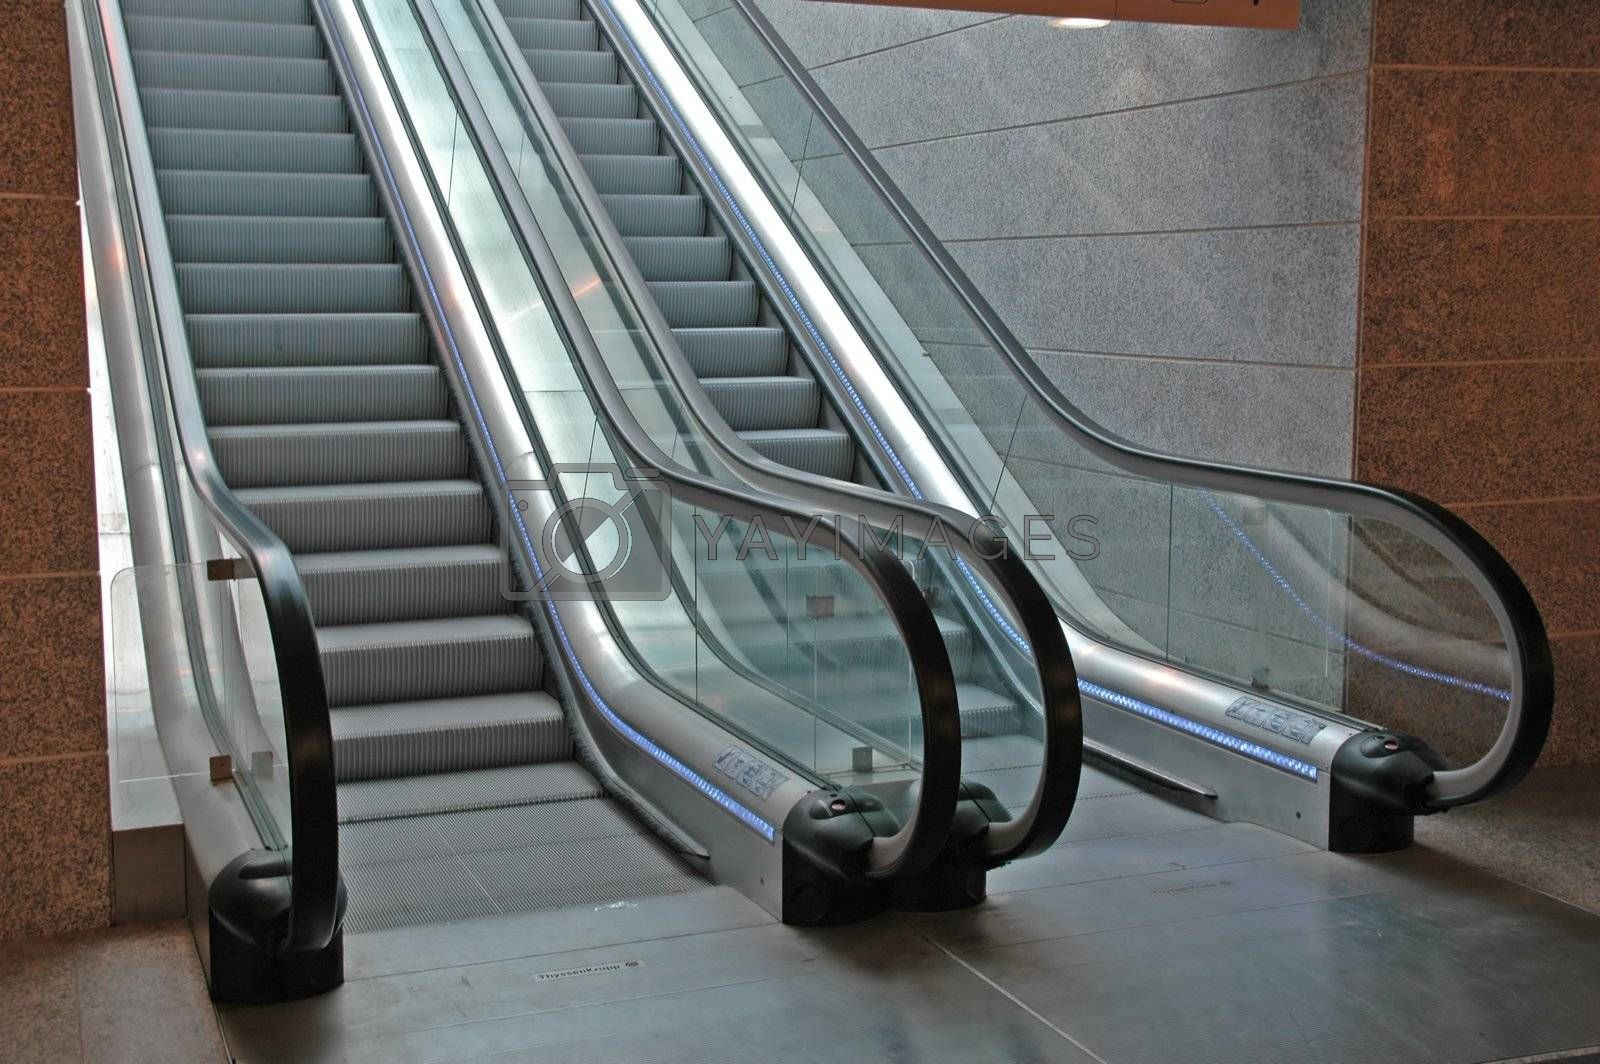 Modern Airport Interior with escalators by raalves